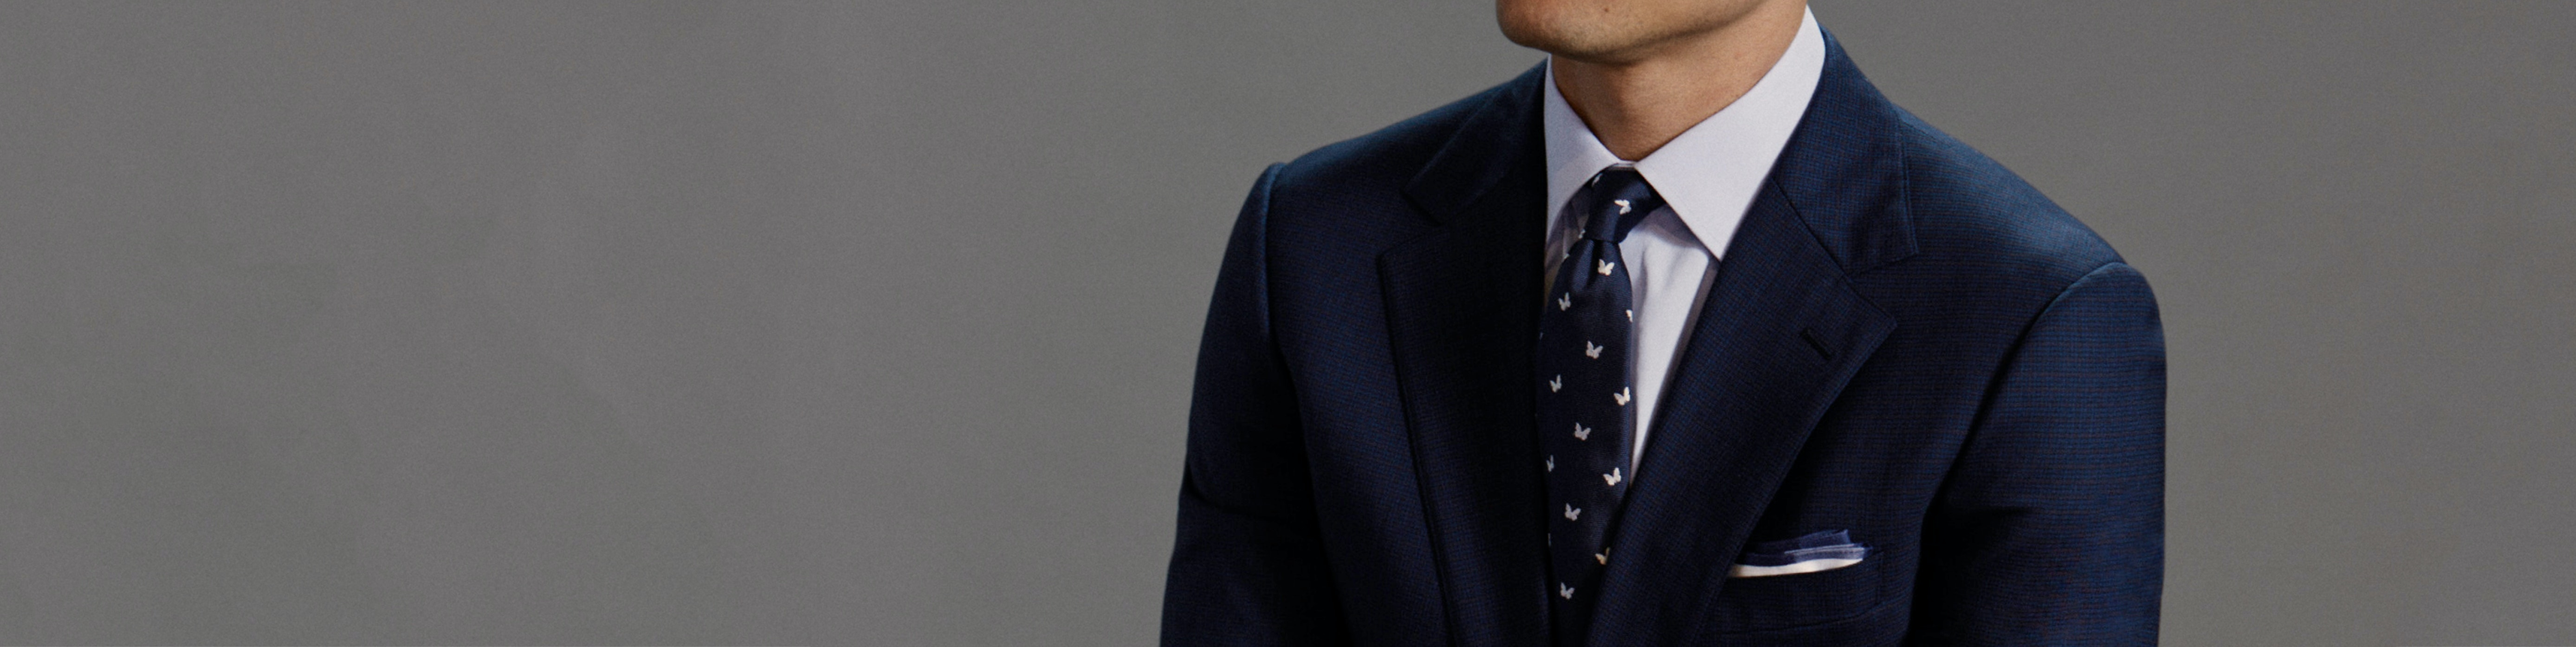 Ties & Pocket Squares Hero Image